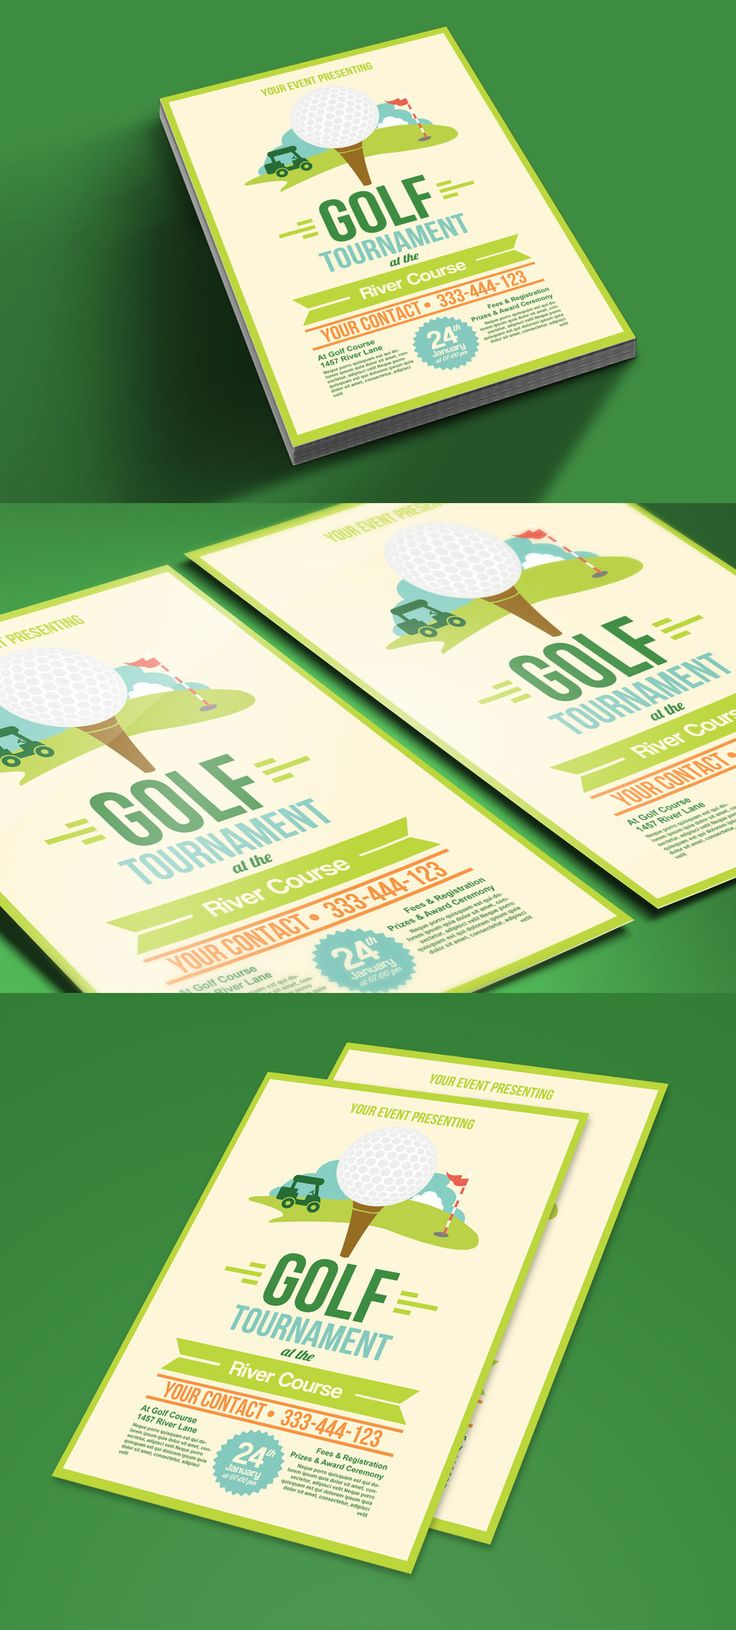 Best Golf Tournament Promotional Print Templates Images On